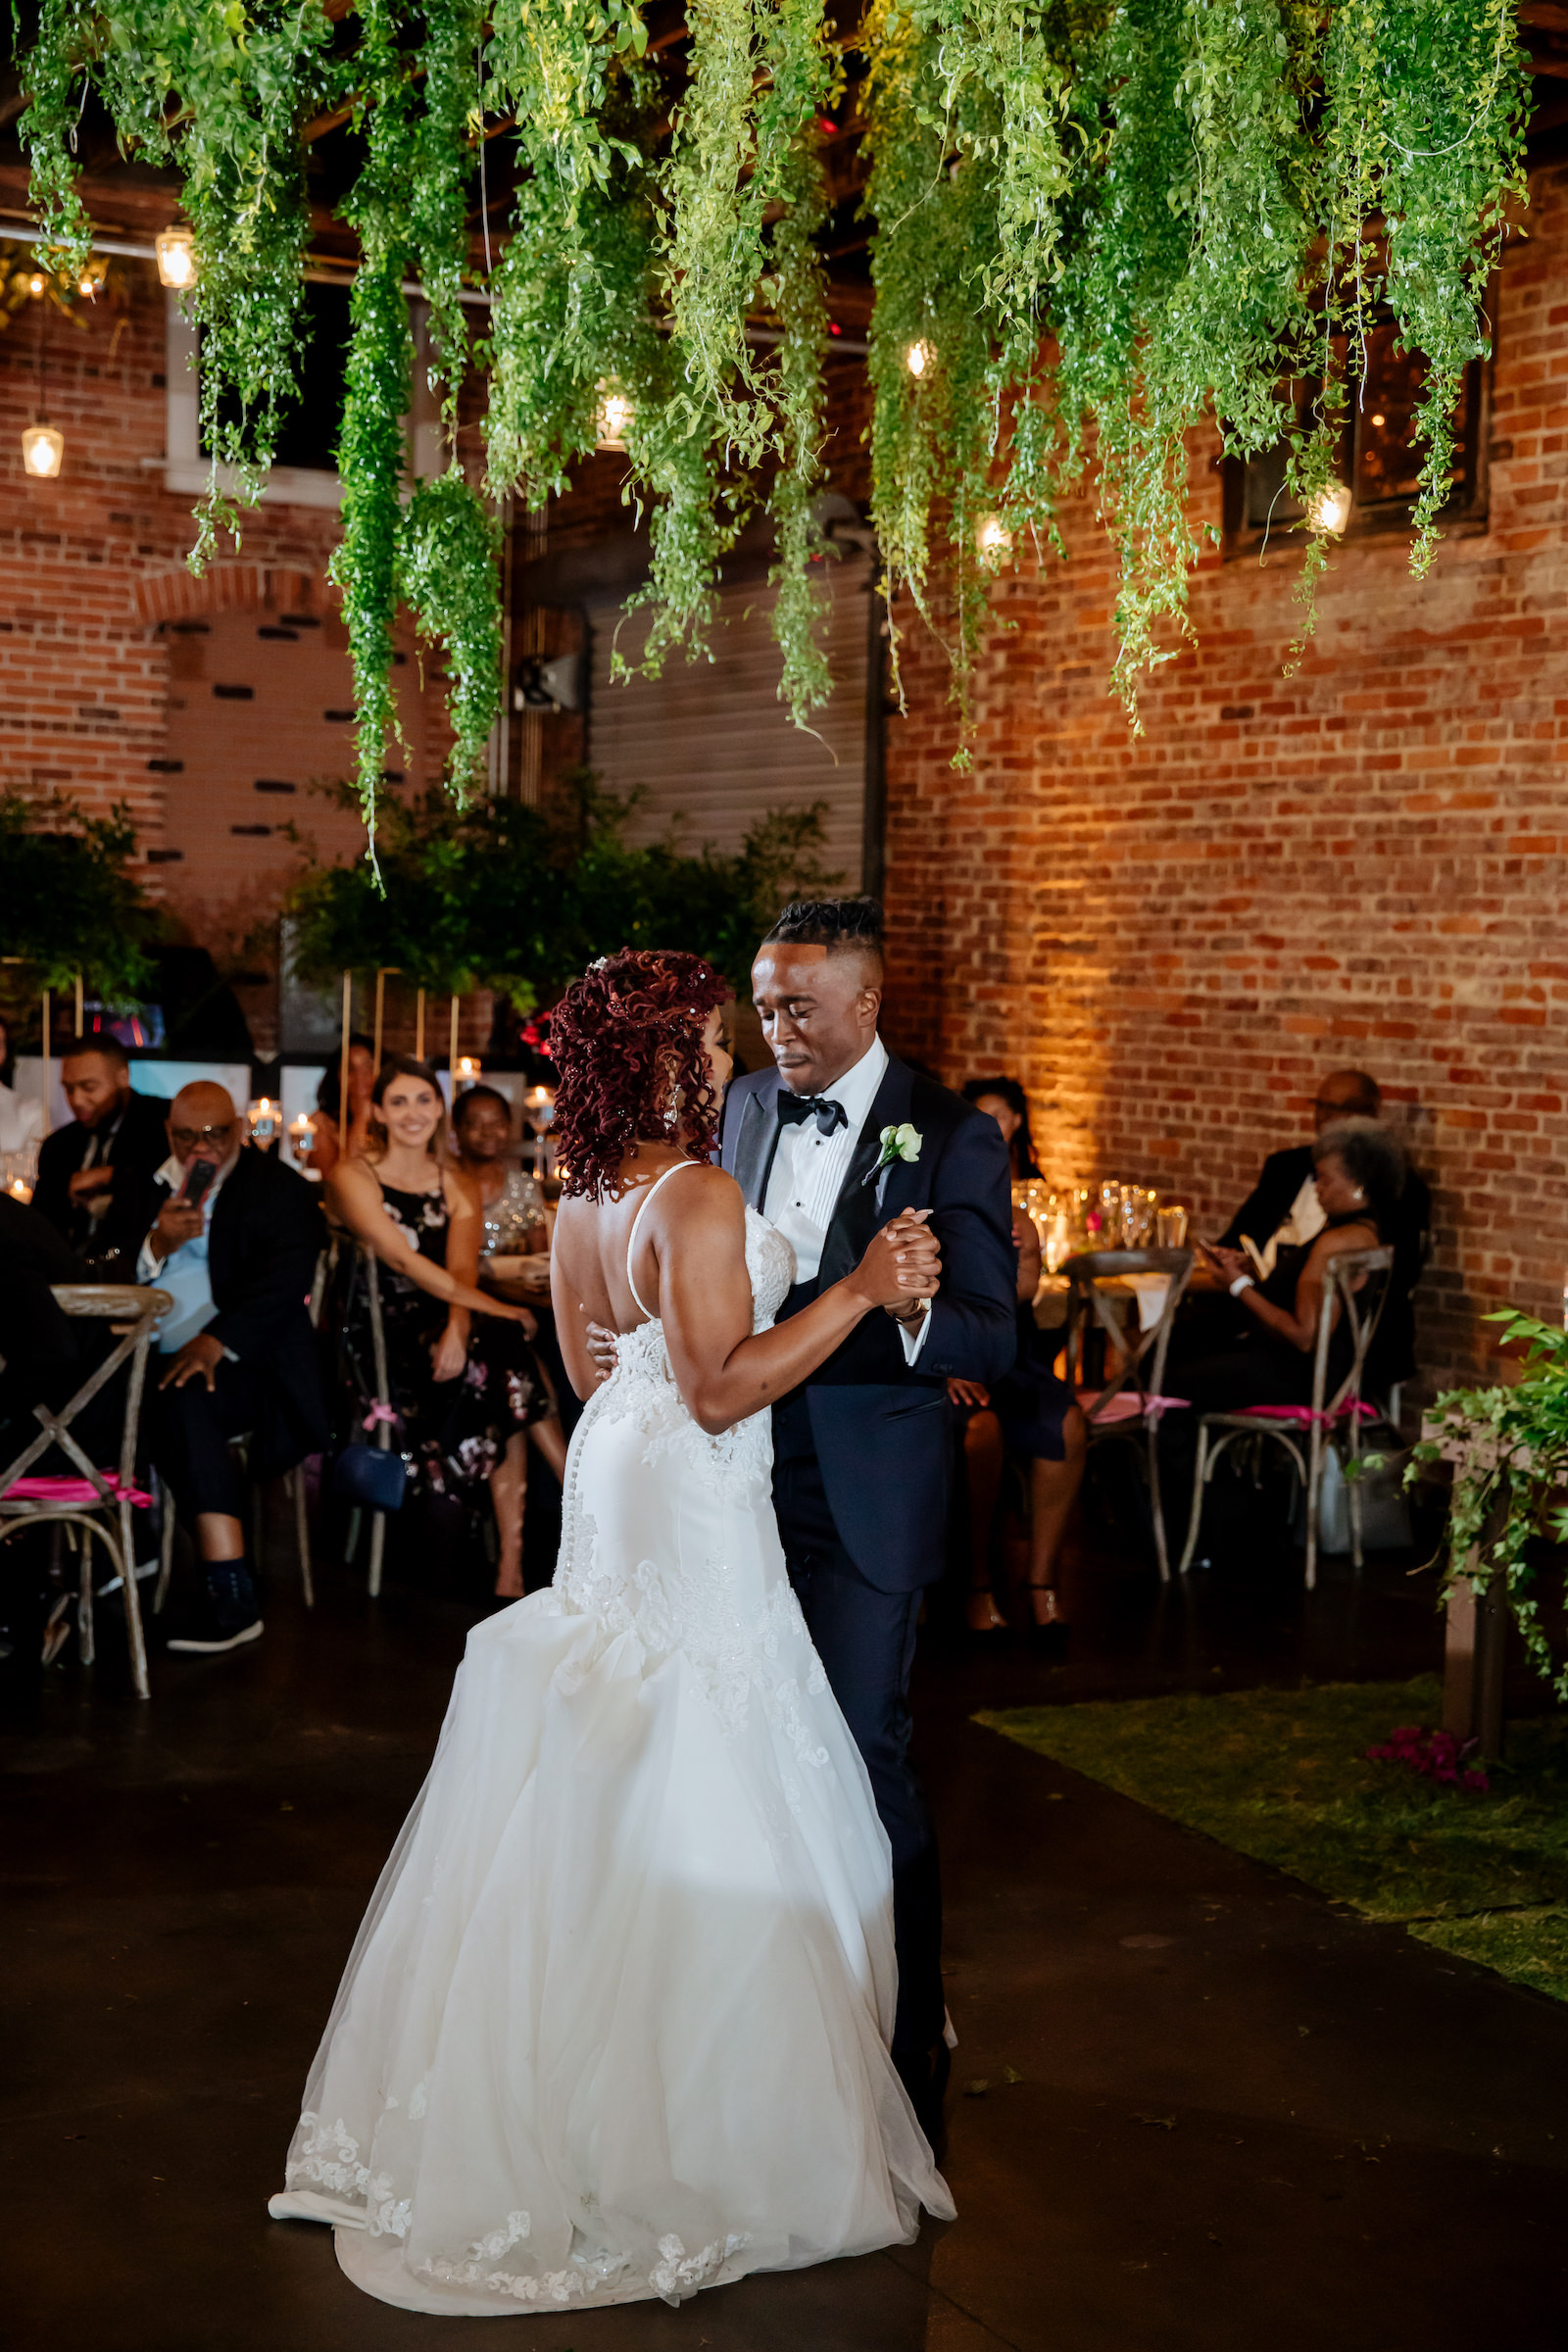 Bride and Groom First Dance at Tampa Heights Wedding Reception in Historic Venue with Brock Walls   Suspended Greenery Garland Ceiling Installment Wedding Floral Chandelier